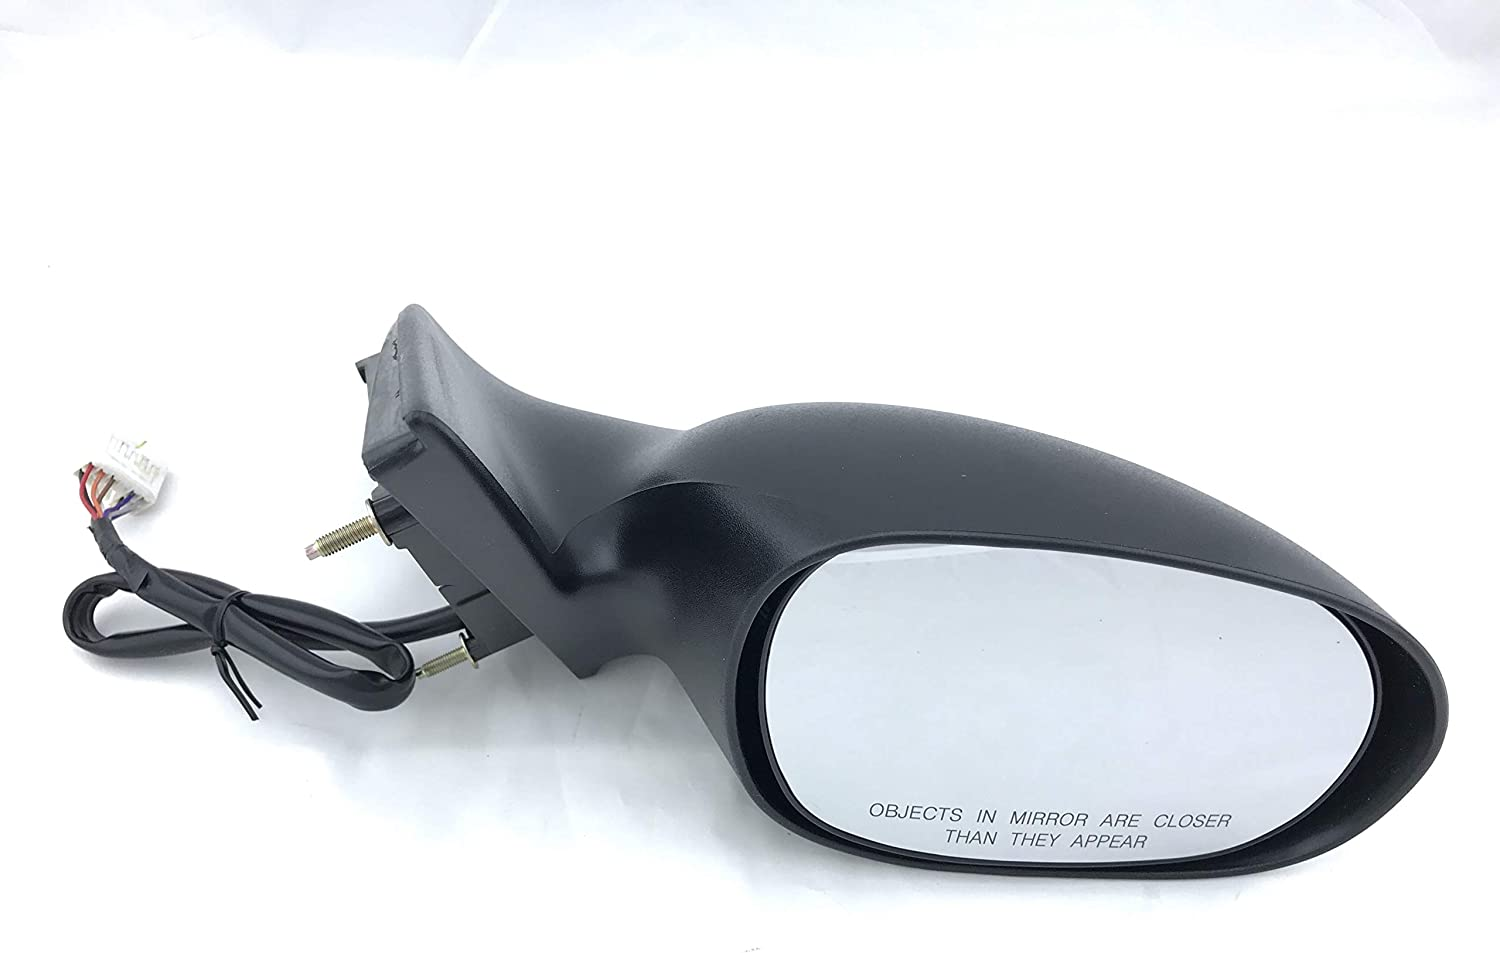 Parts Link # OE:4805116AF//AD//AE CH1321216 Passenger Side Right Rear View Mirror Replacement for CHRYSLER LHS 1999-2001//Chrysler Concorde Dodge Intrepid 98-00